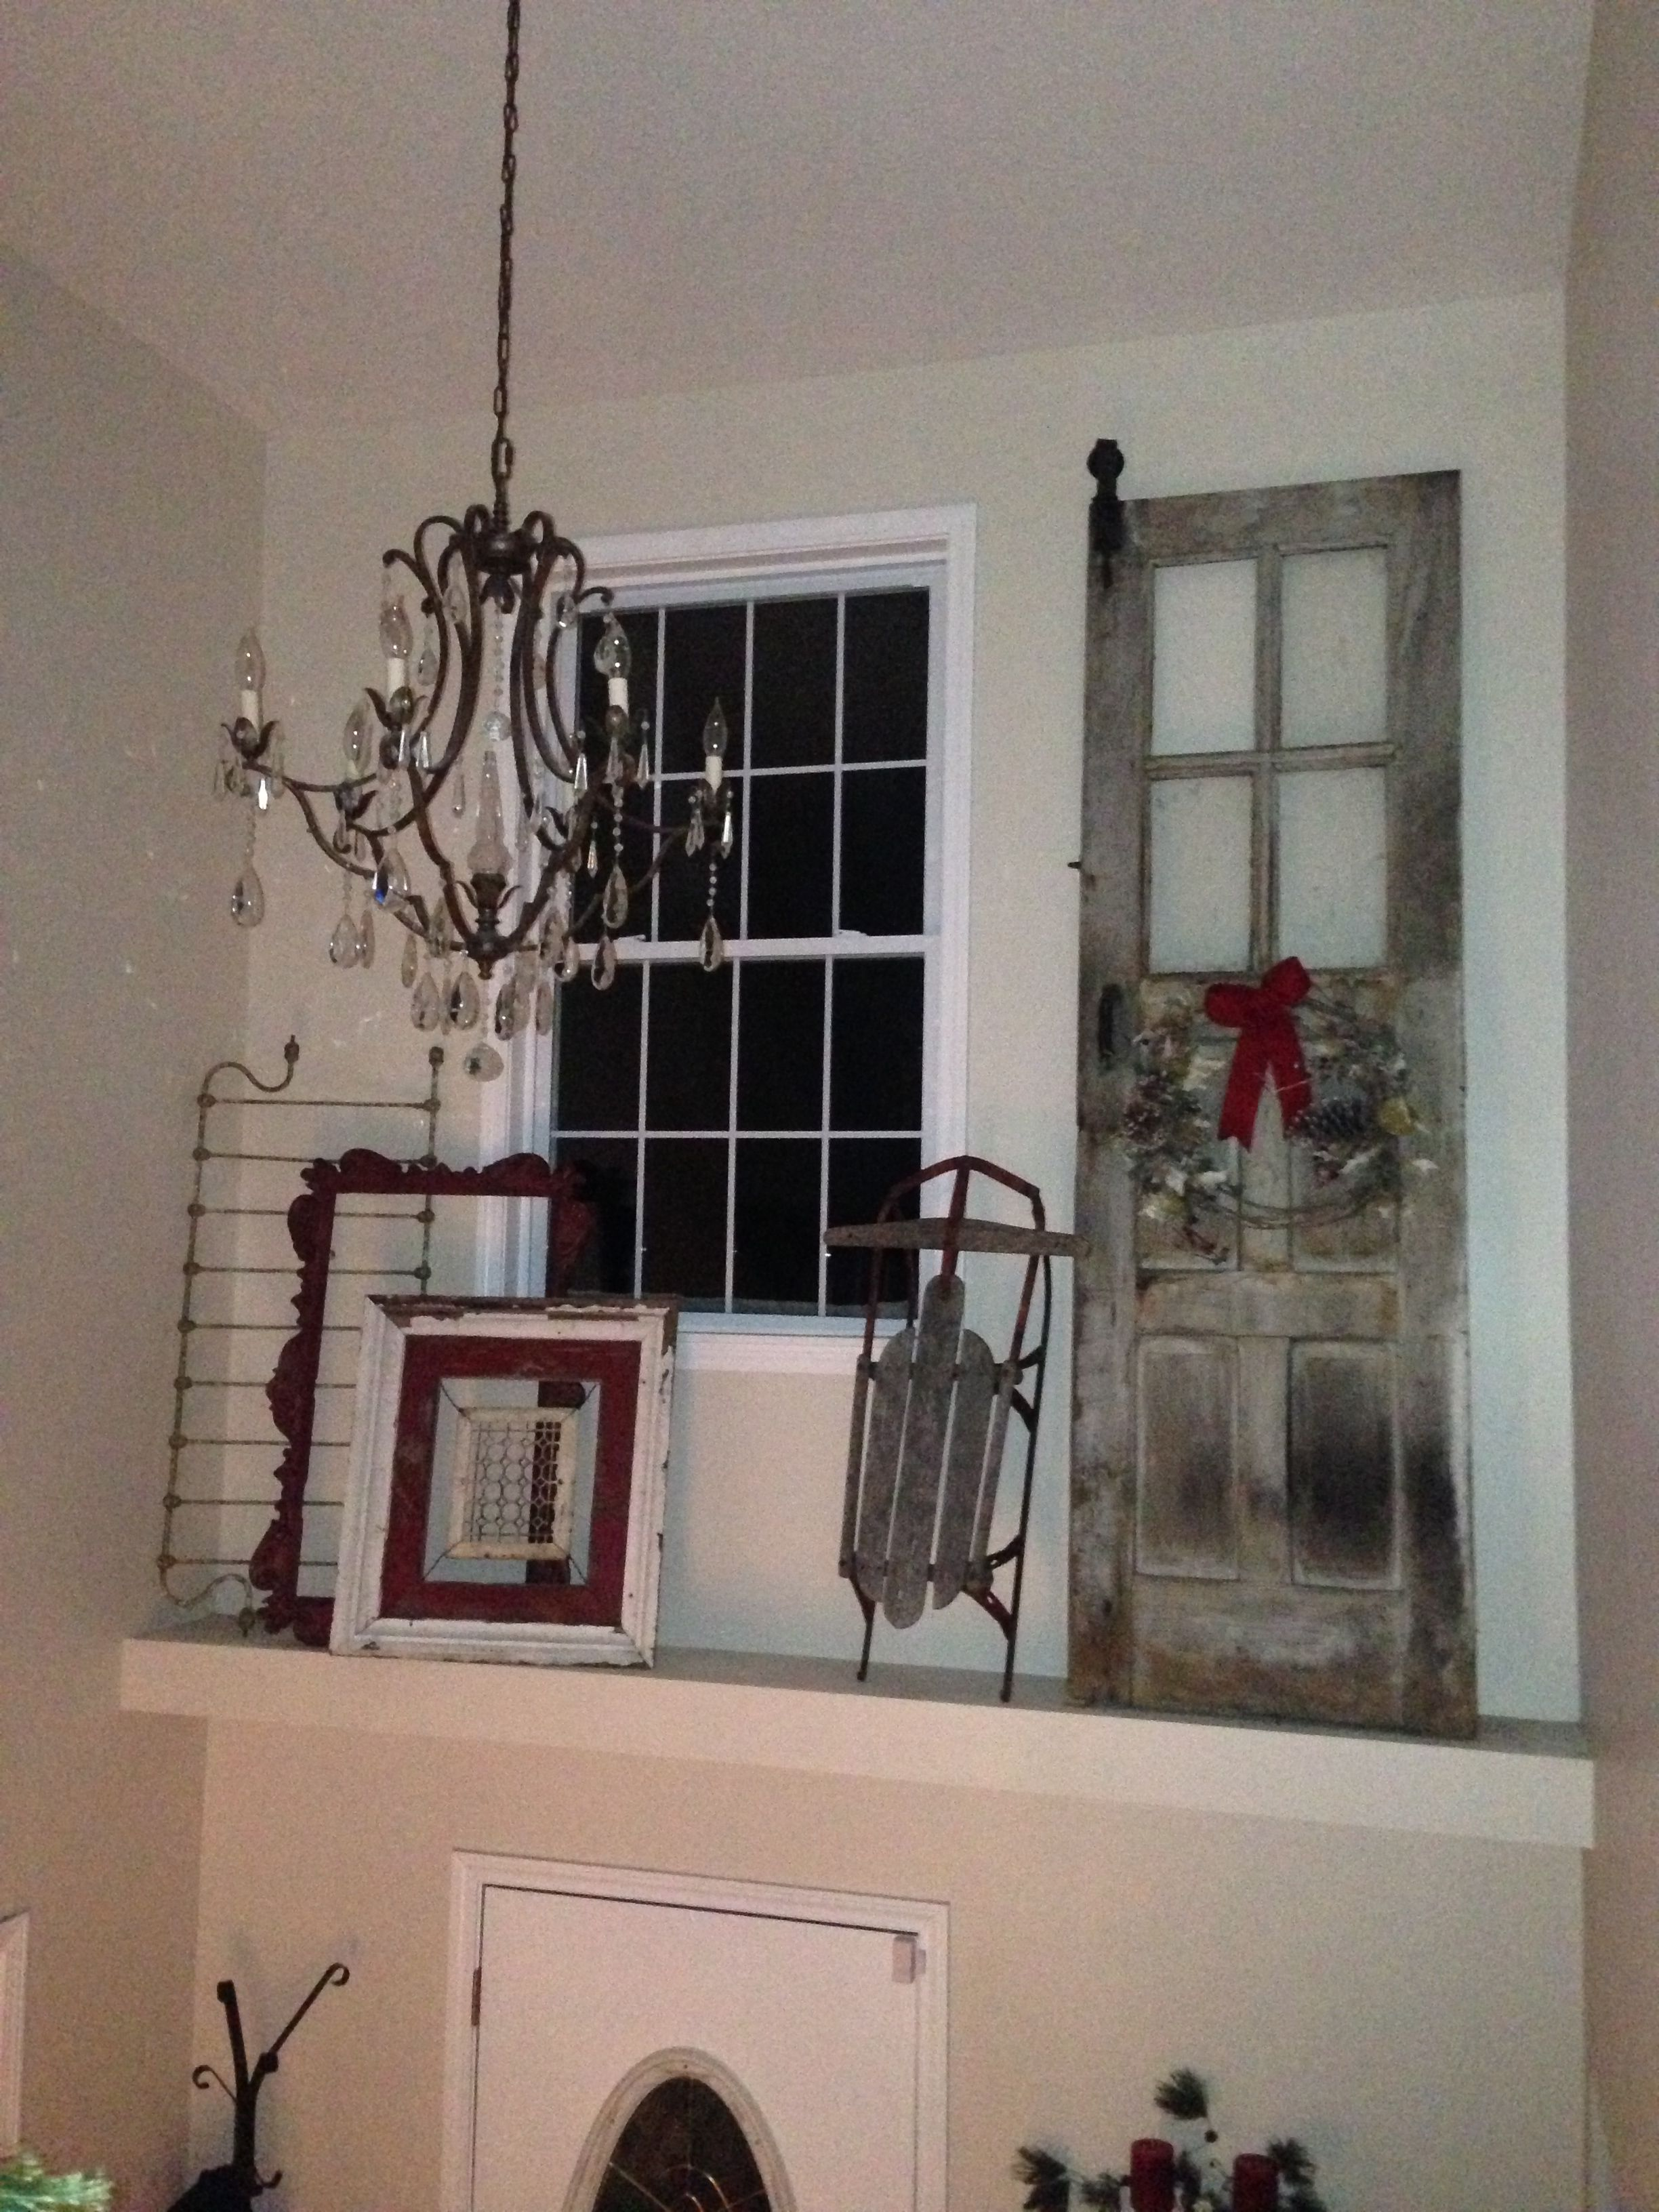 Rustic Christmas Ledge Decor Just Love Decorating With Old Junk Projects Pinterest